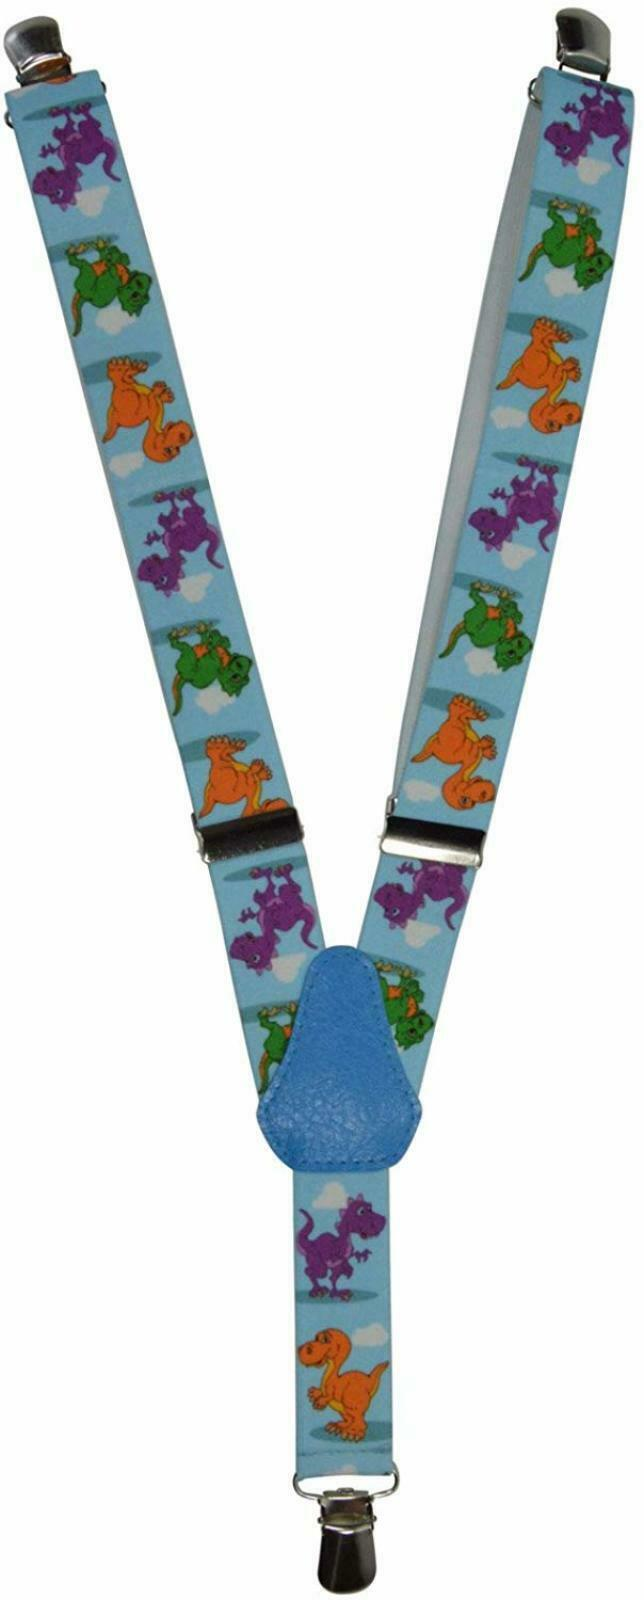 Childrens 1-5 Years Elasticated Clip on Braces/Suspenders with Dinosaur Design 3